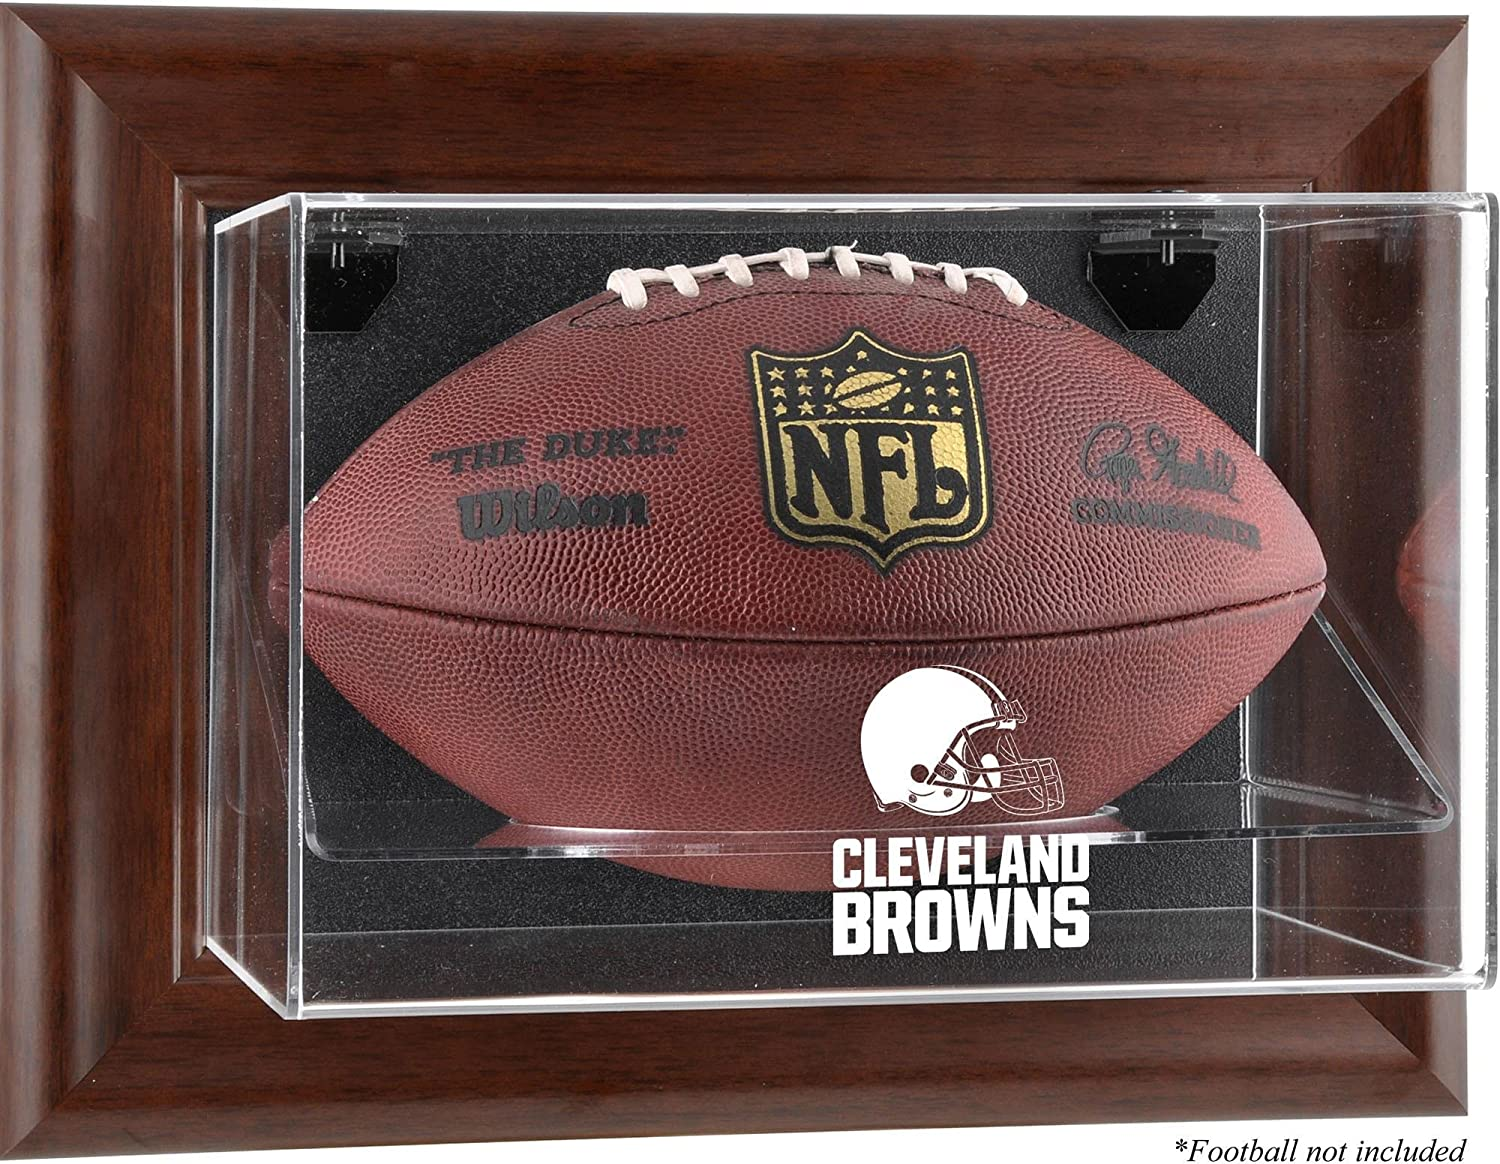 free shipping Cleveland Browns San Diego Mall Football Display Case - D Logo Brown